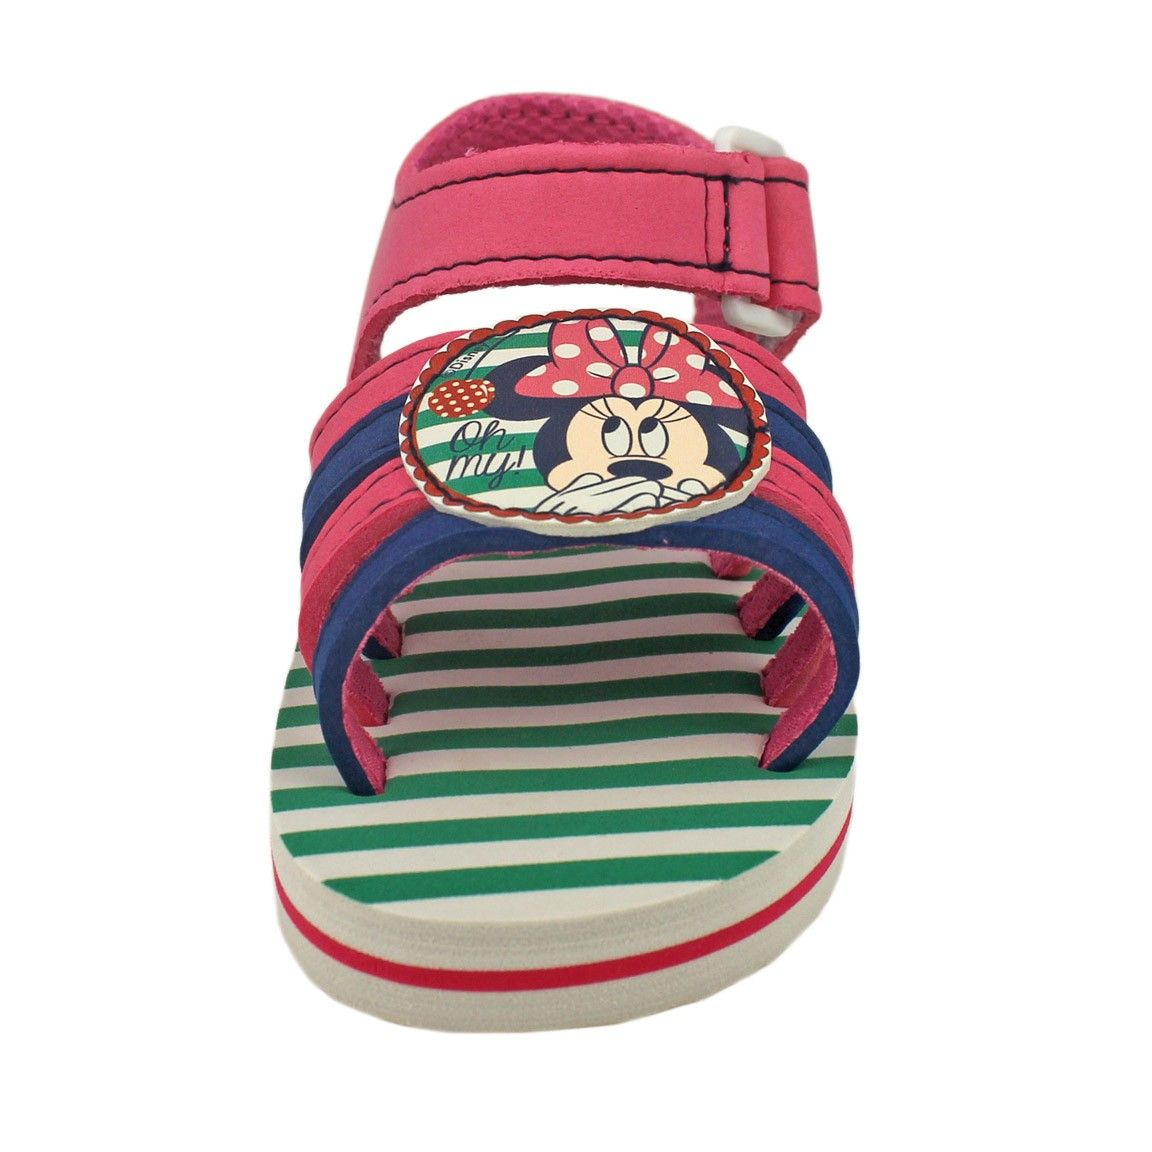 Sandalias playa Minnie Cherry